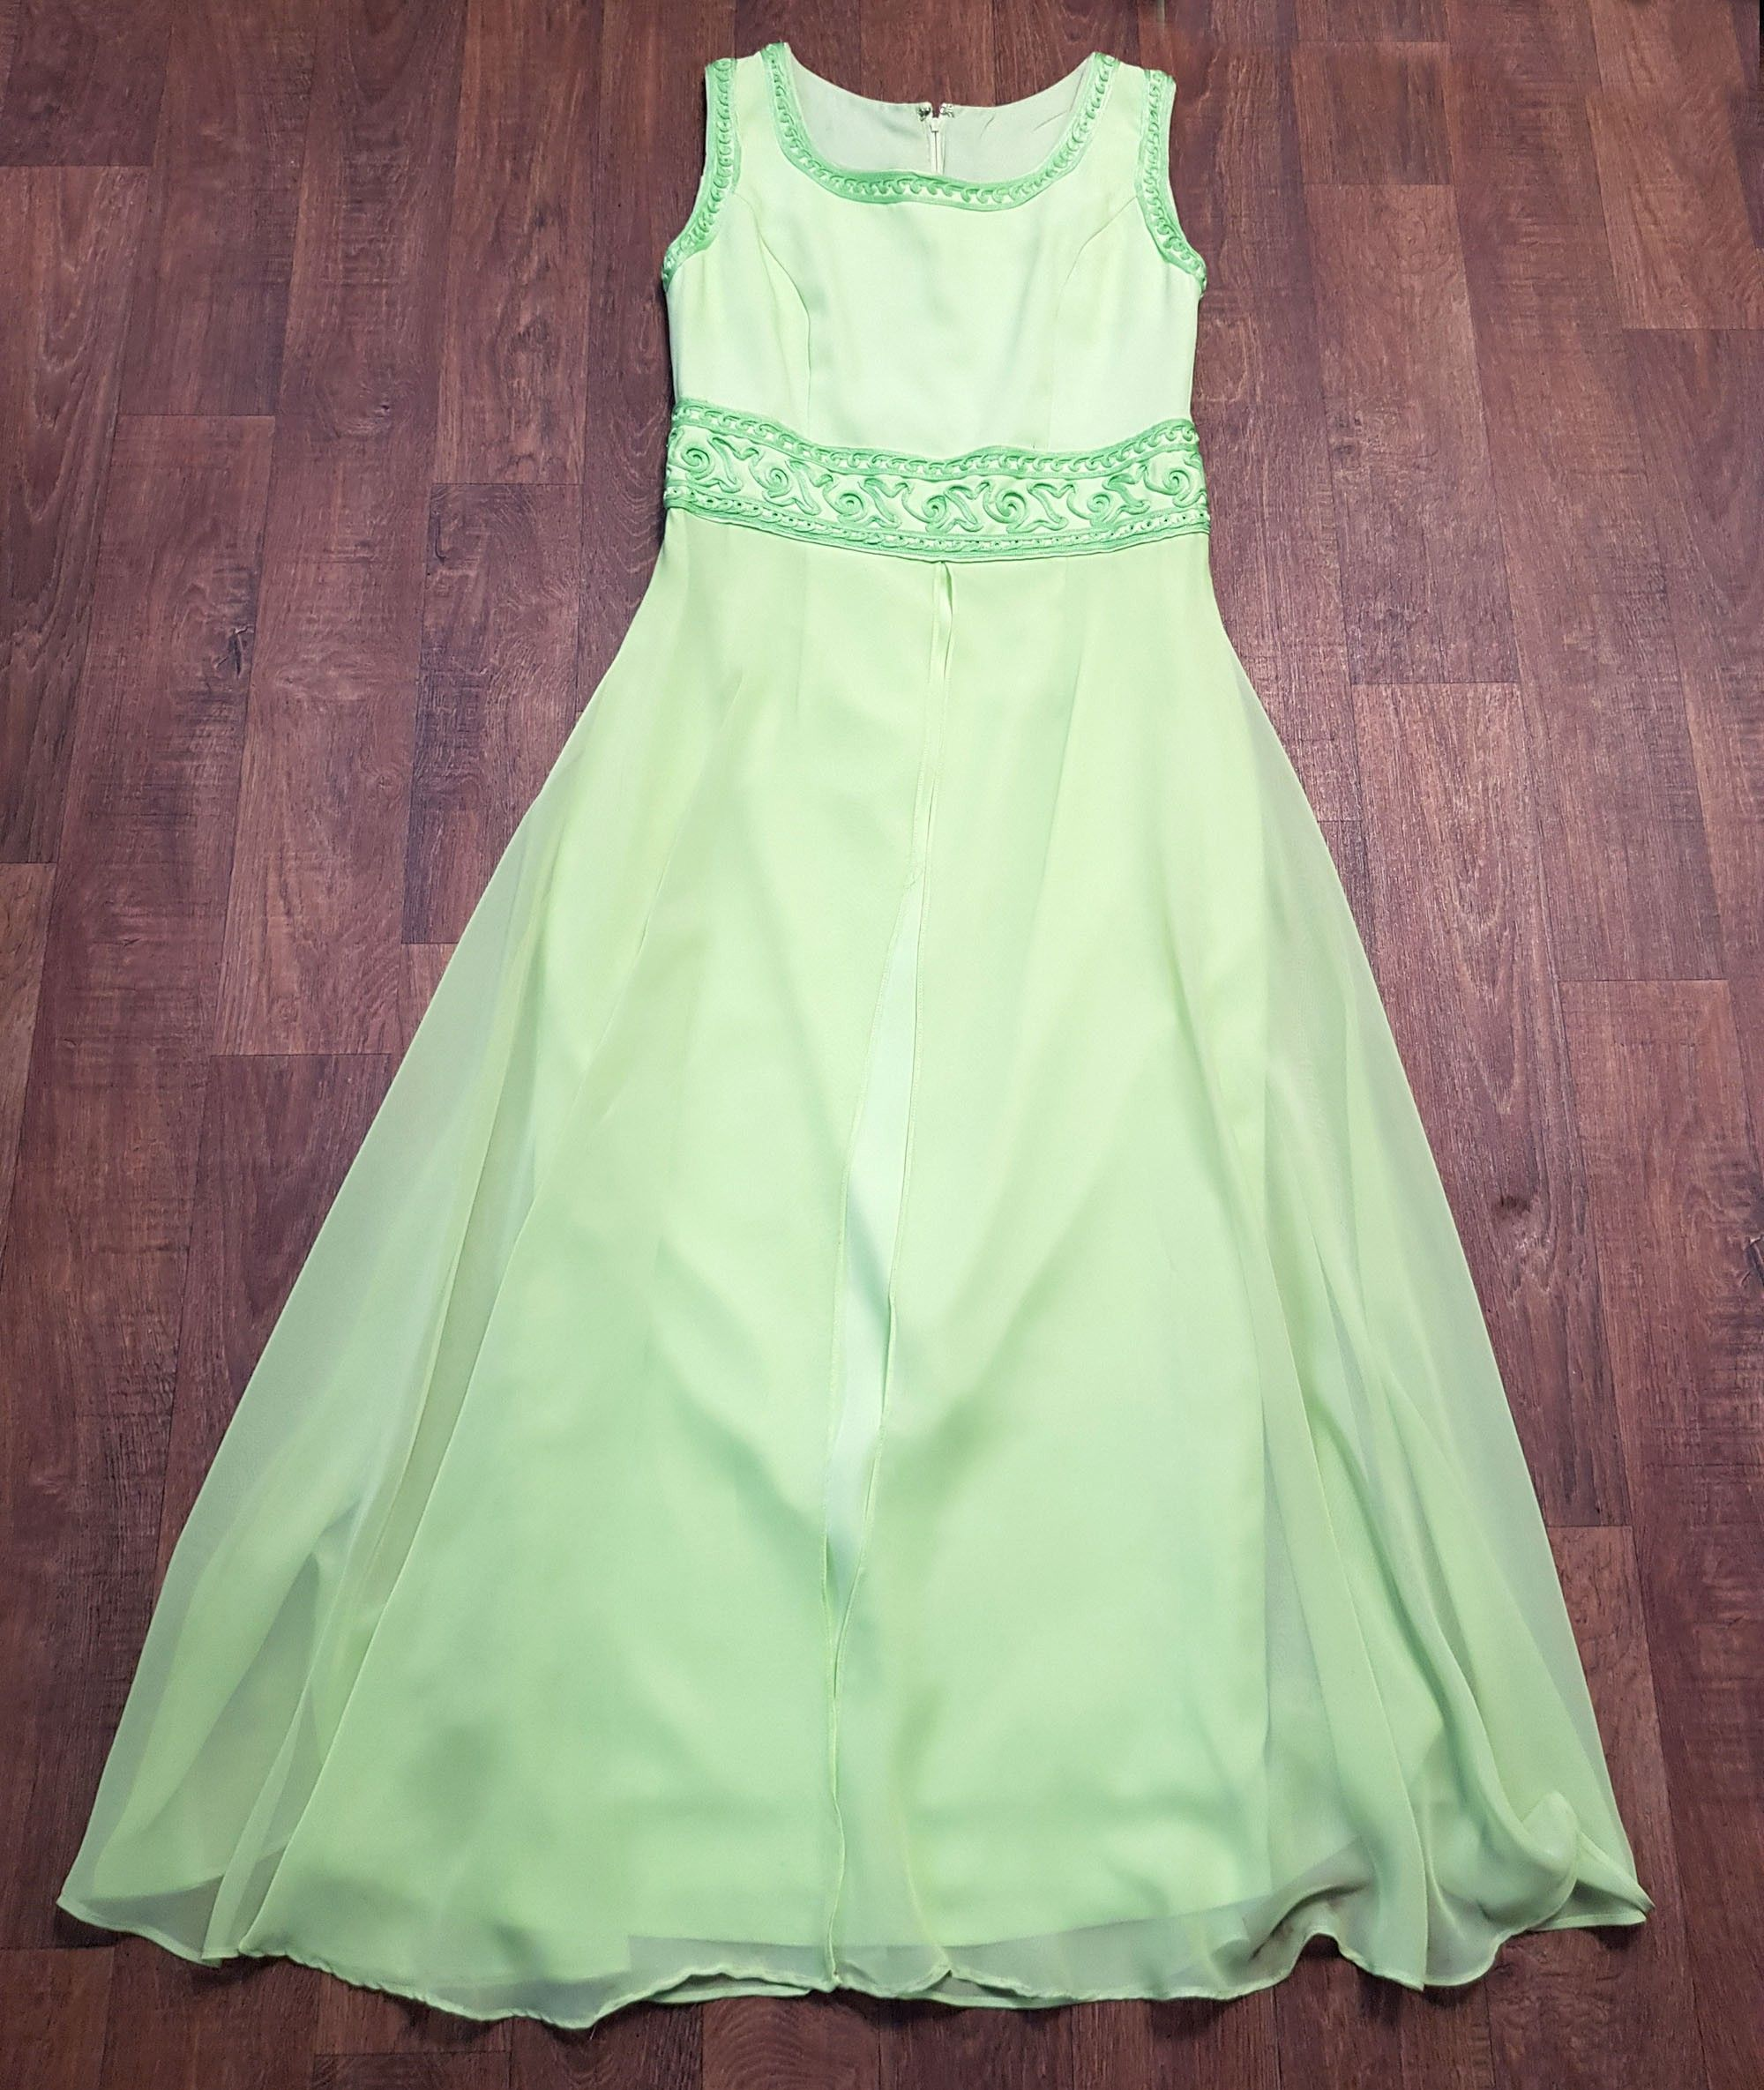 1970s Vintage Lime Green Overlay Maxi Dress UK Size 12